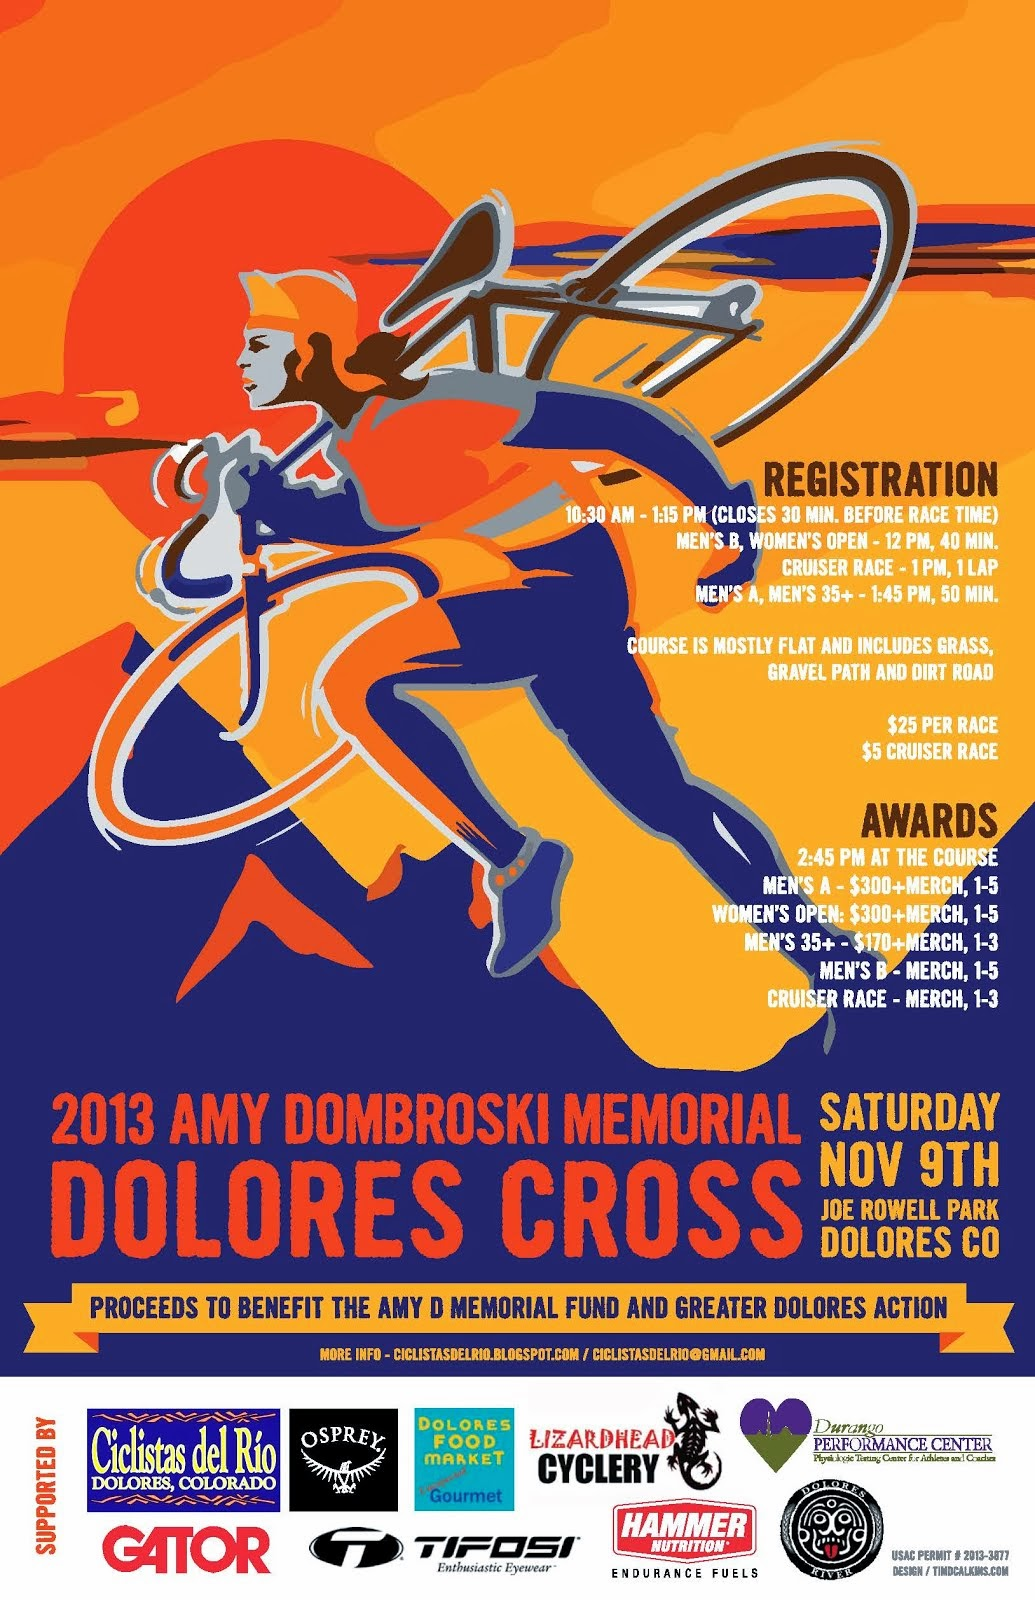 2013 Amy Dombroski Memorial Dolores Cross